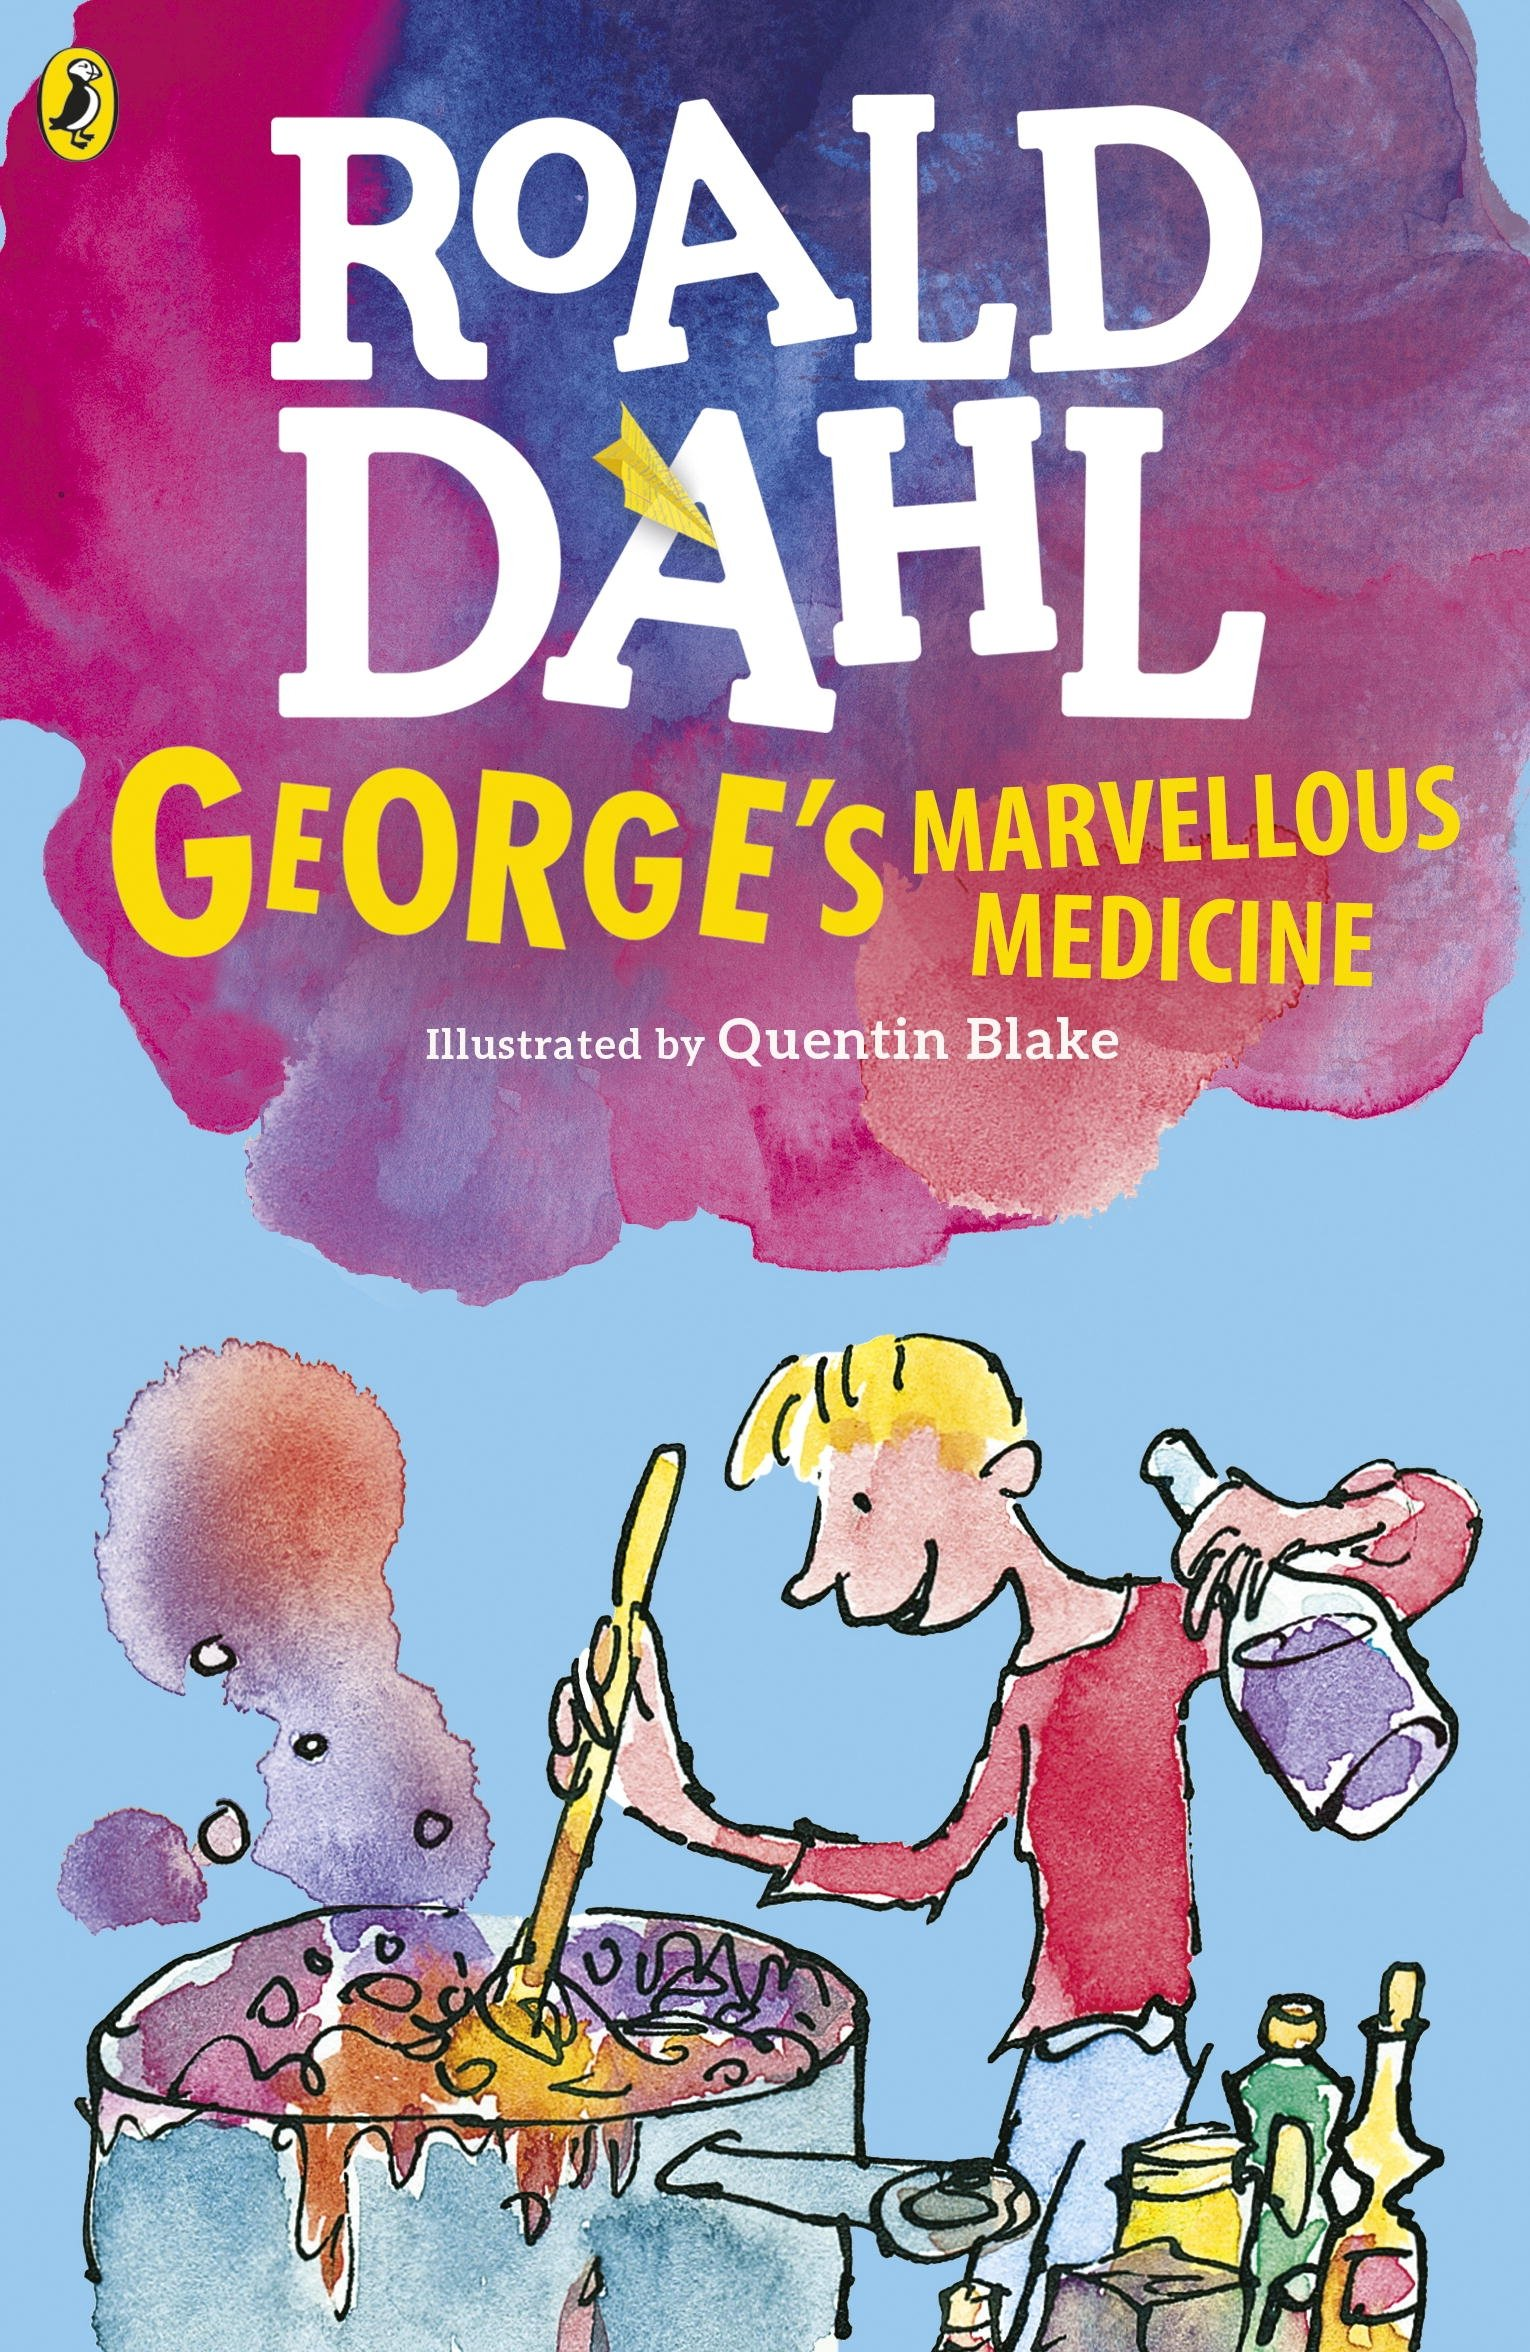 George's Marvellous Medicine (Dahl Fiction): Amazon.co.uk: Dahl, Roald,  Blake, Quentin: 9780141365503: Books